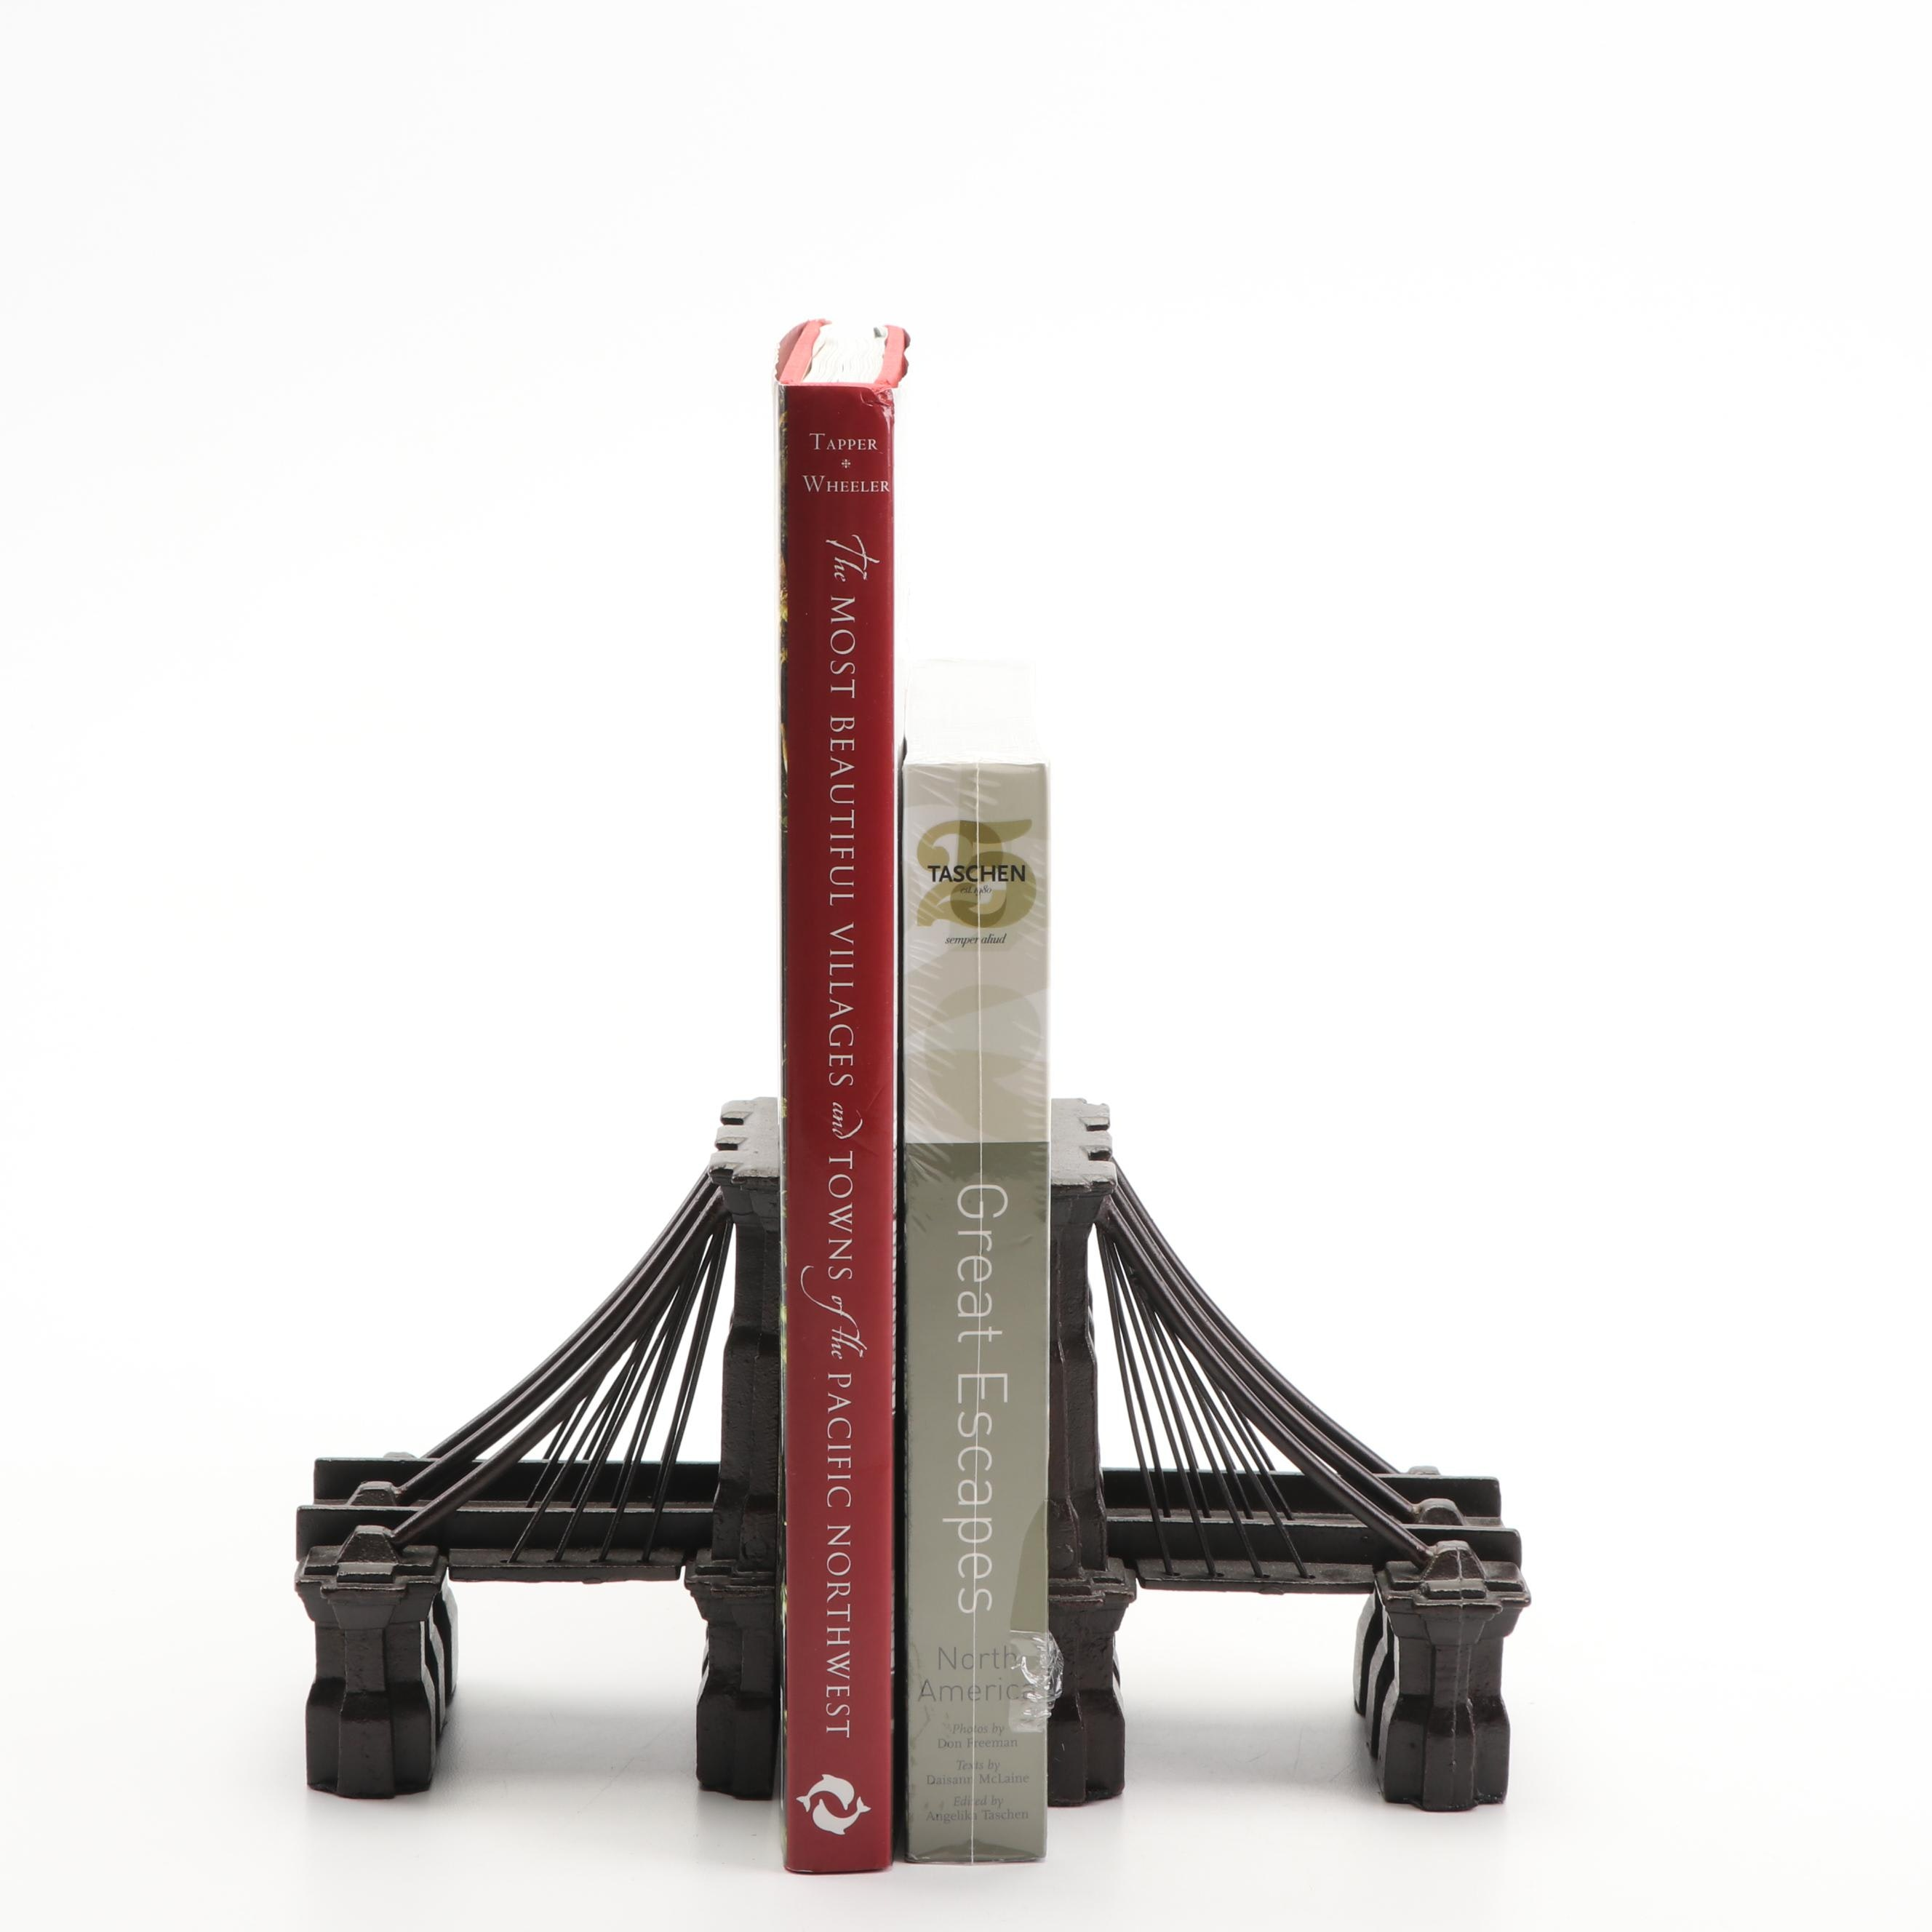 Travel Coffee Table Books with Brooklyn Bridge Bookends